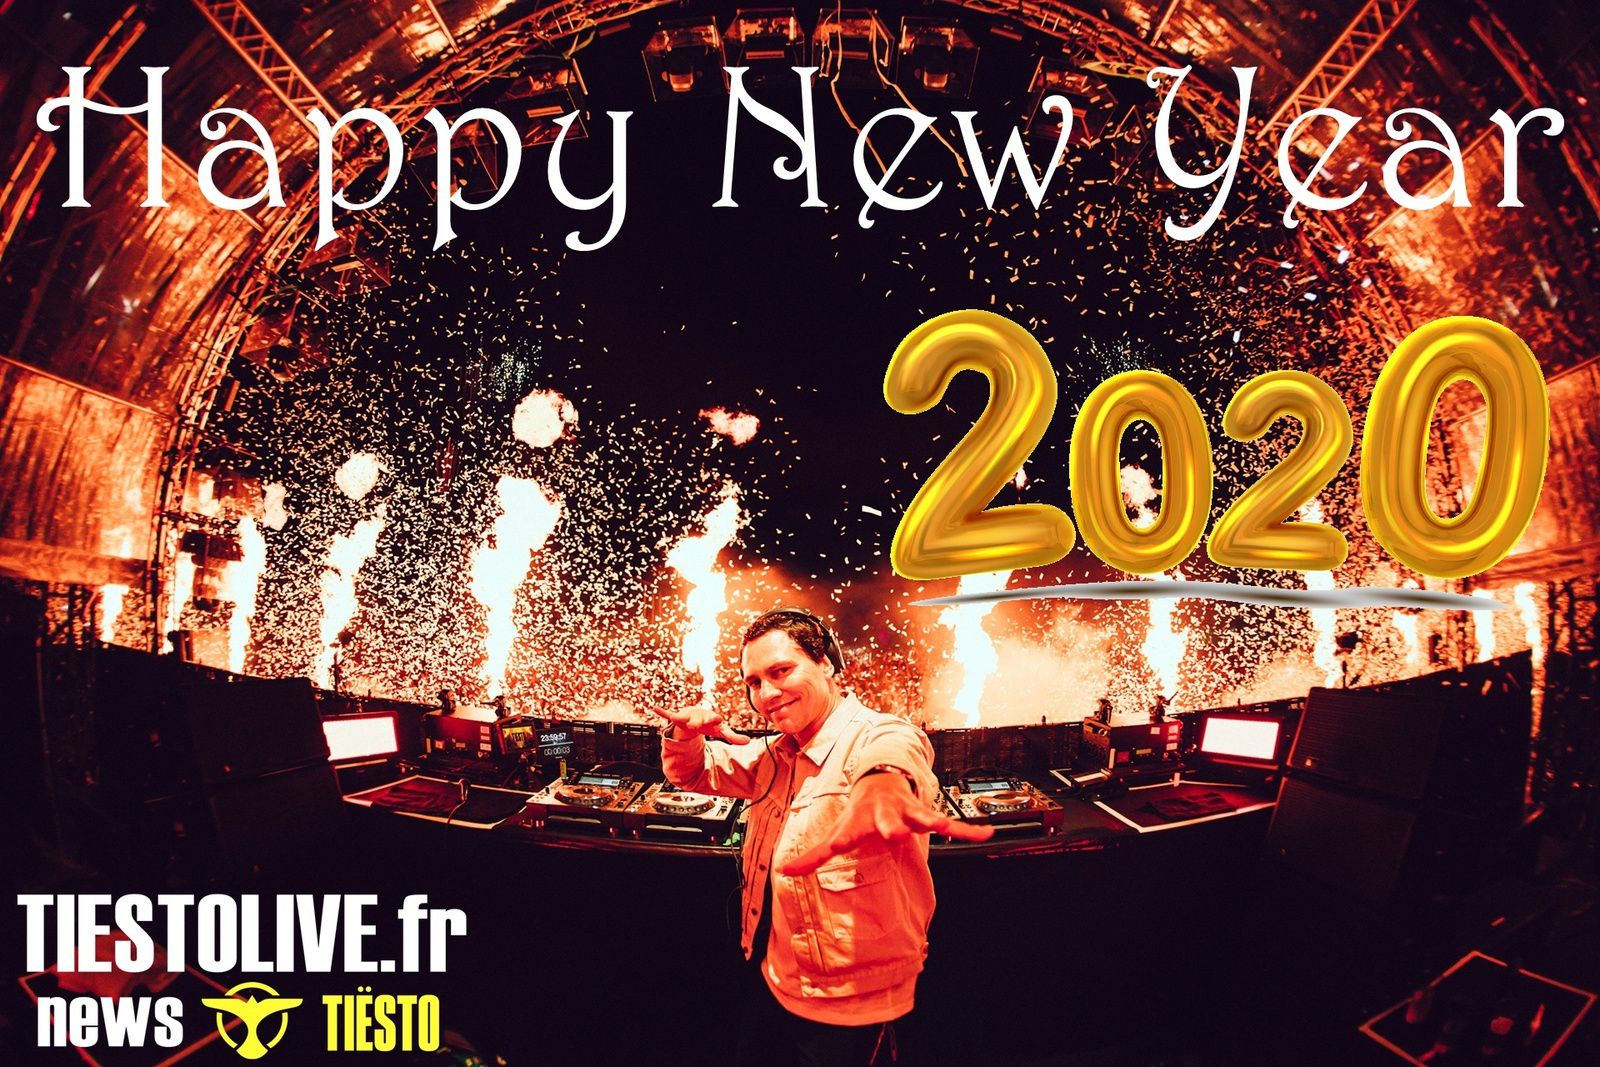 Happy New Year, Tiësto fans of the world